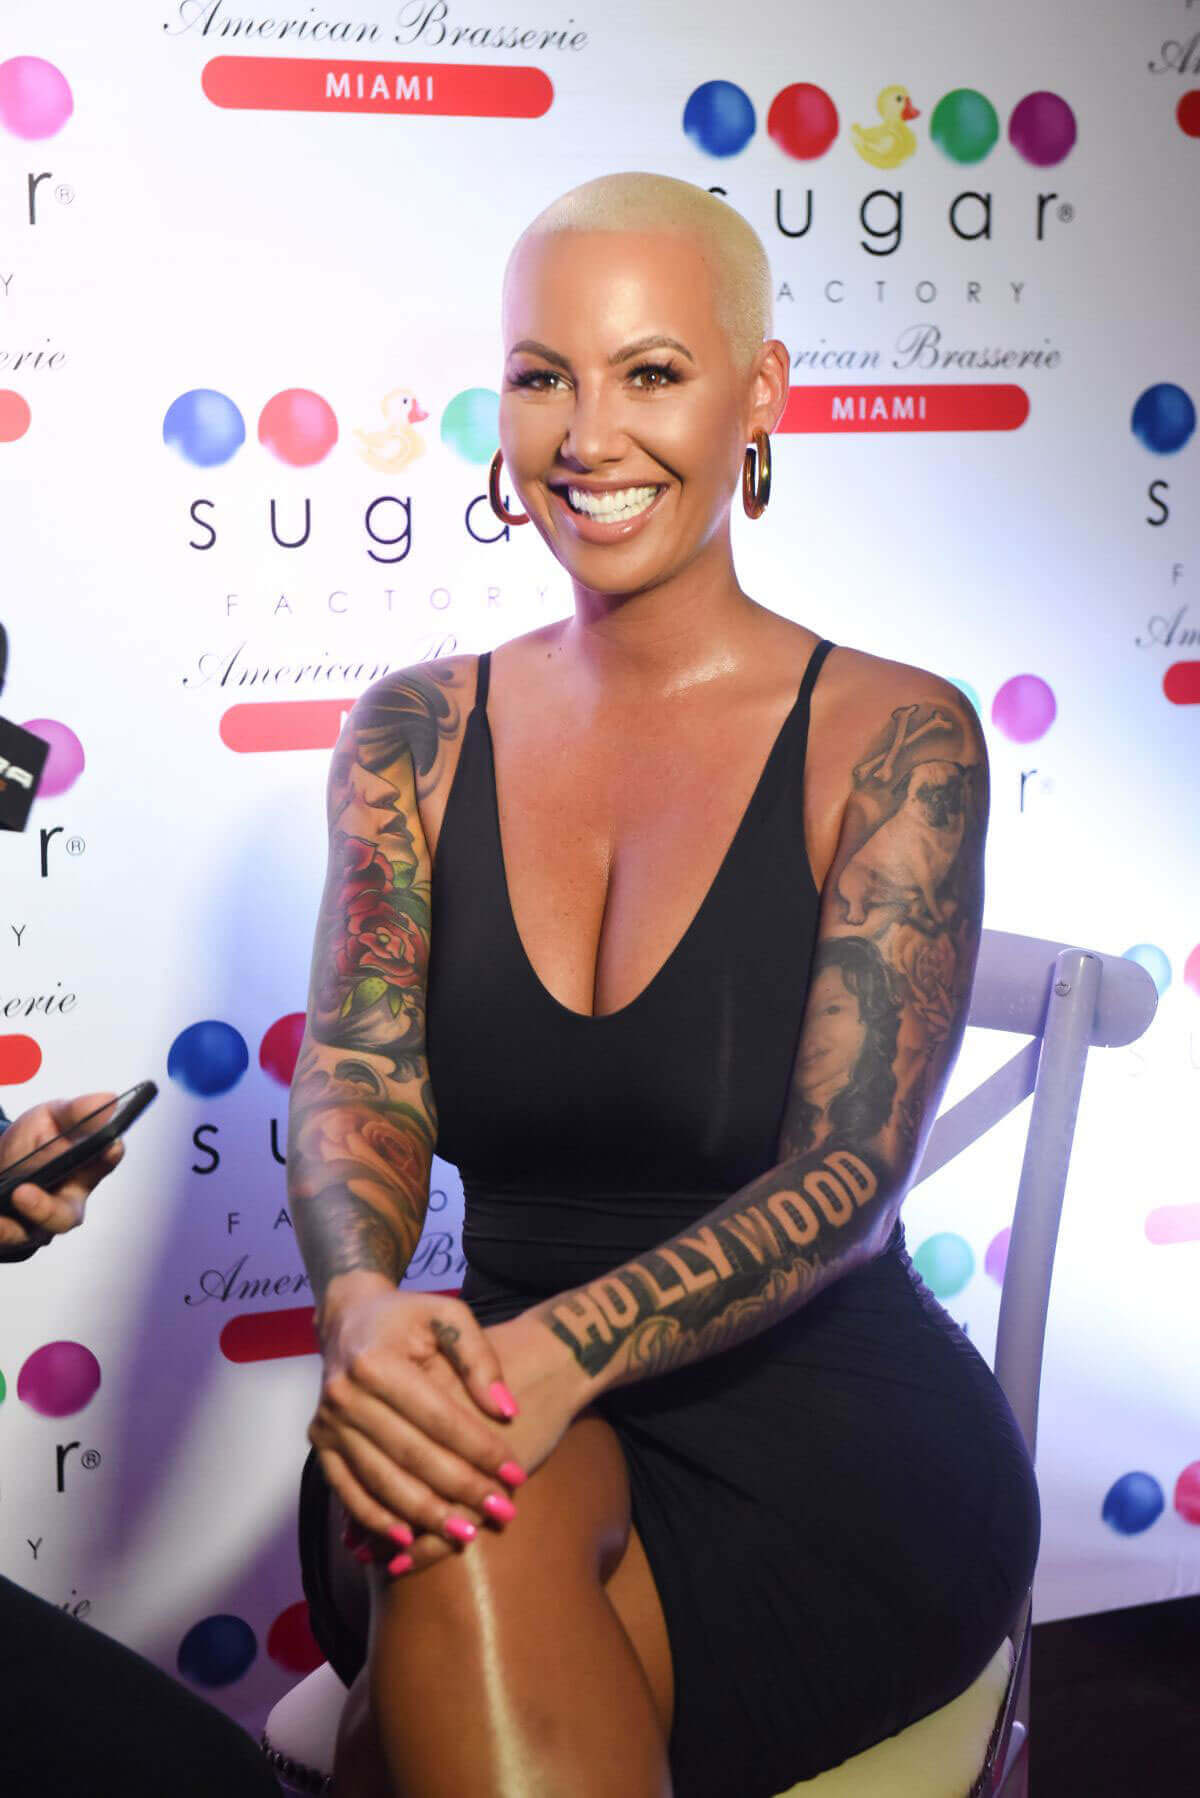 Amber Rose Stills at Sugar Factory American Brassiere in Miami